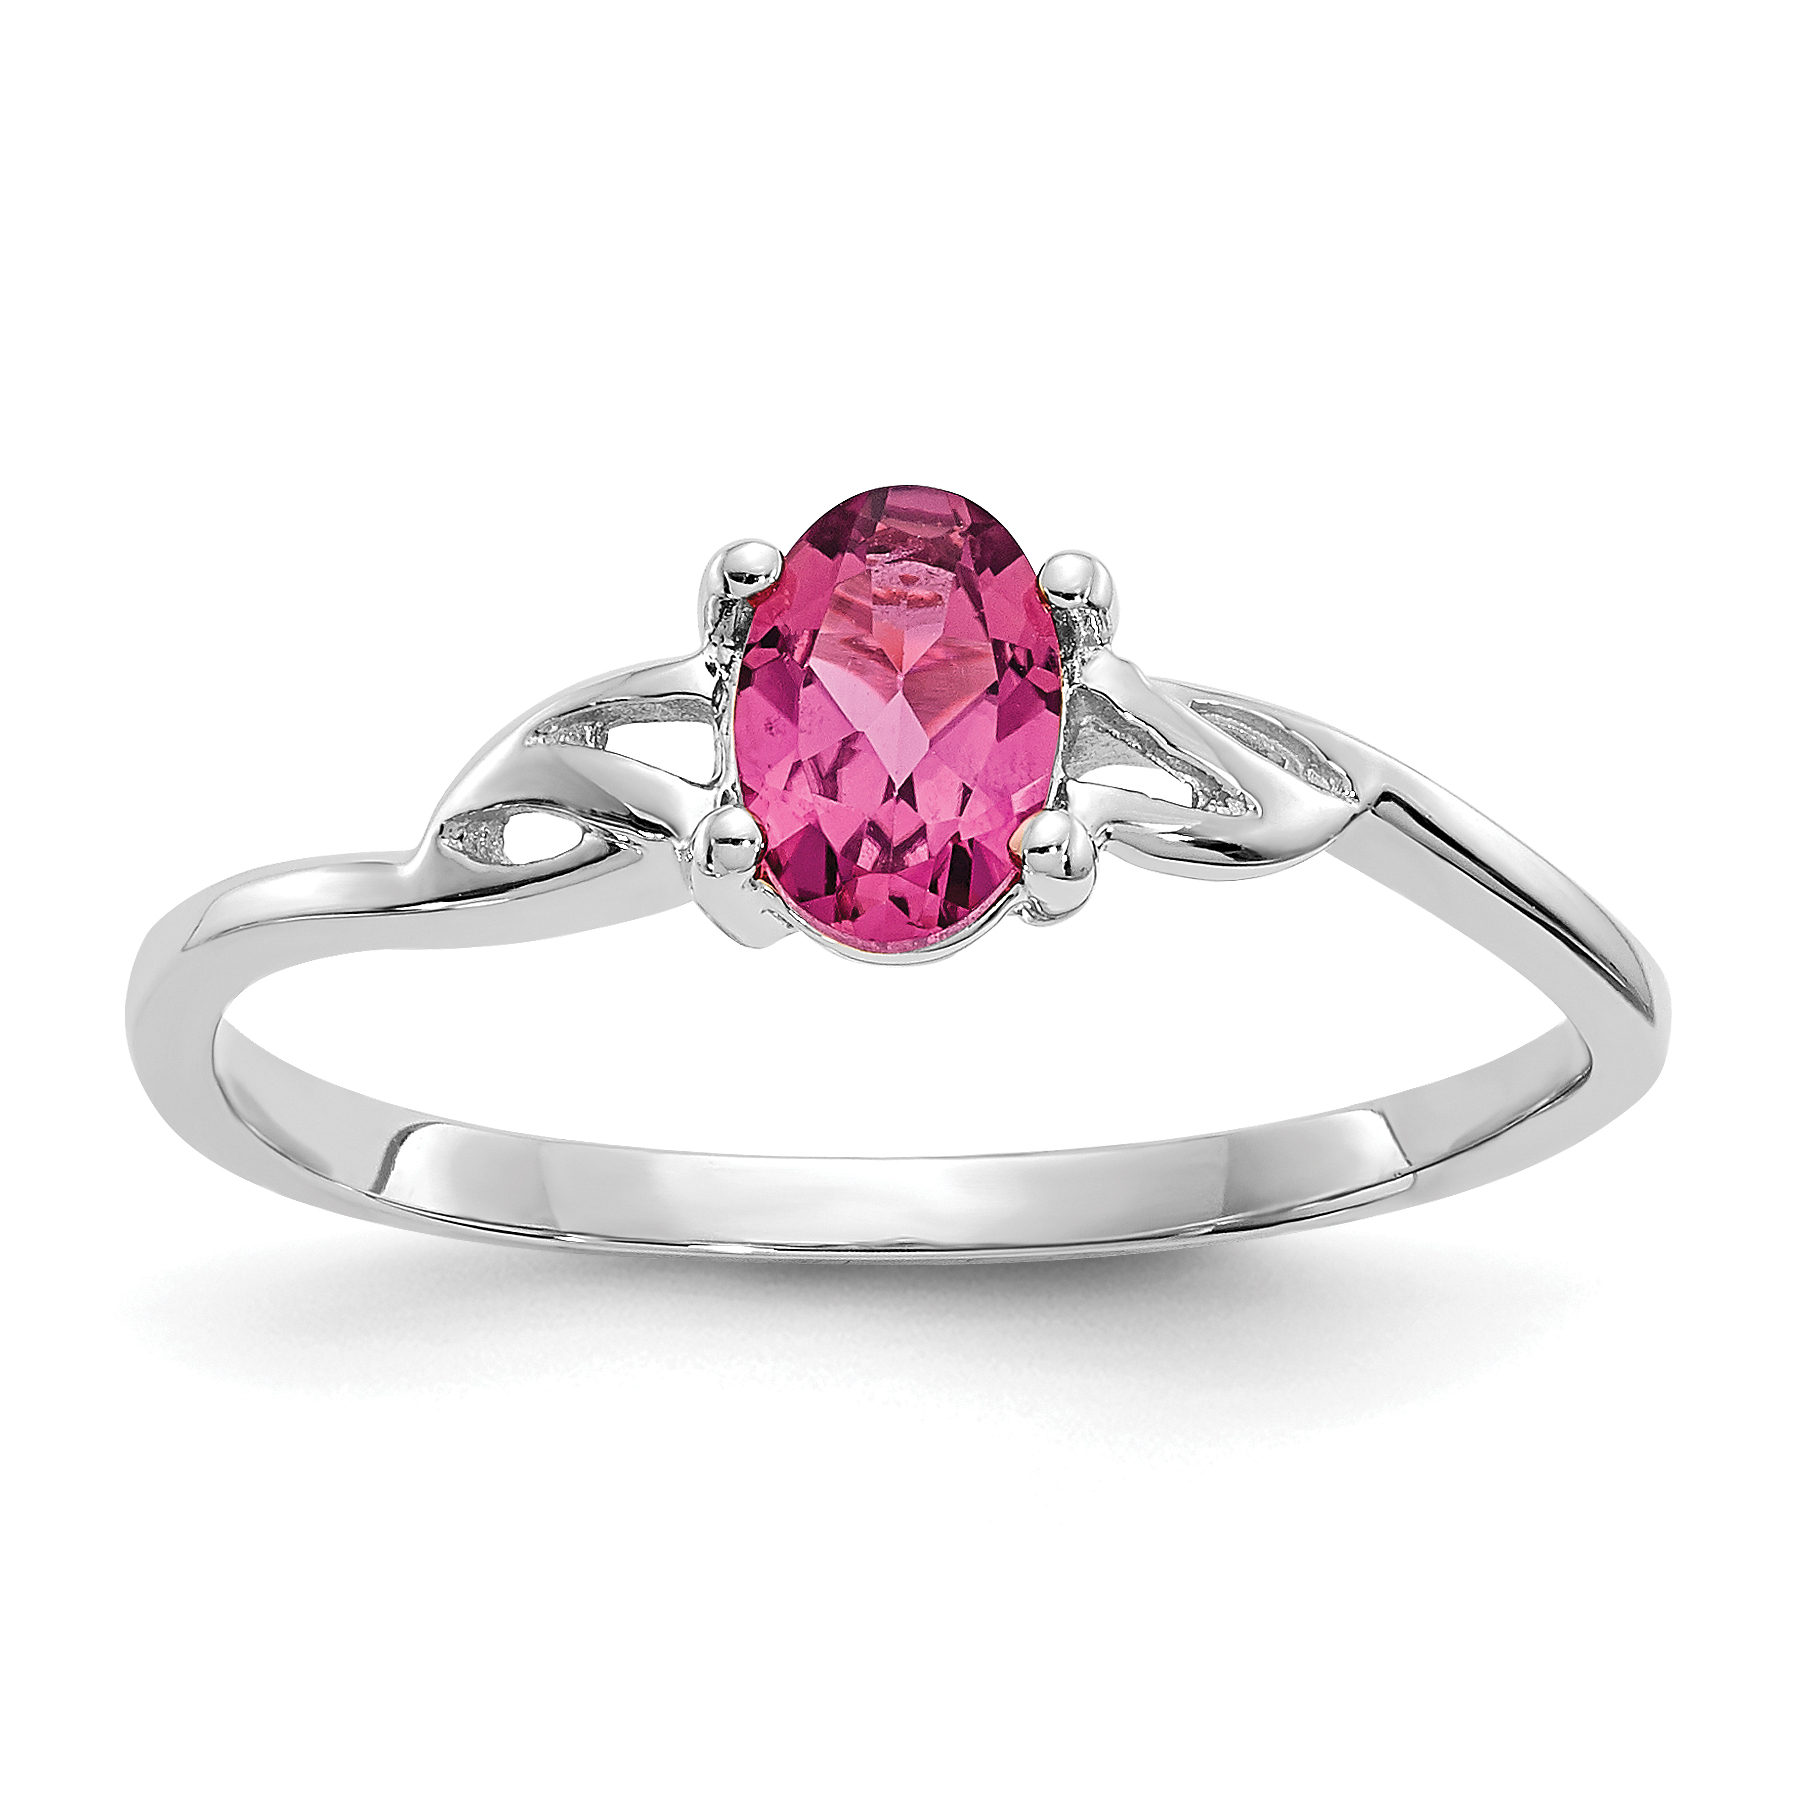 10k White Gold Polished Geniune Pink Tourmaline Birthstone Ring by Saris and Things QG